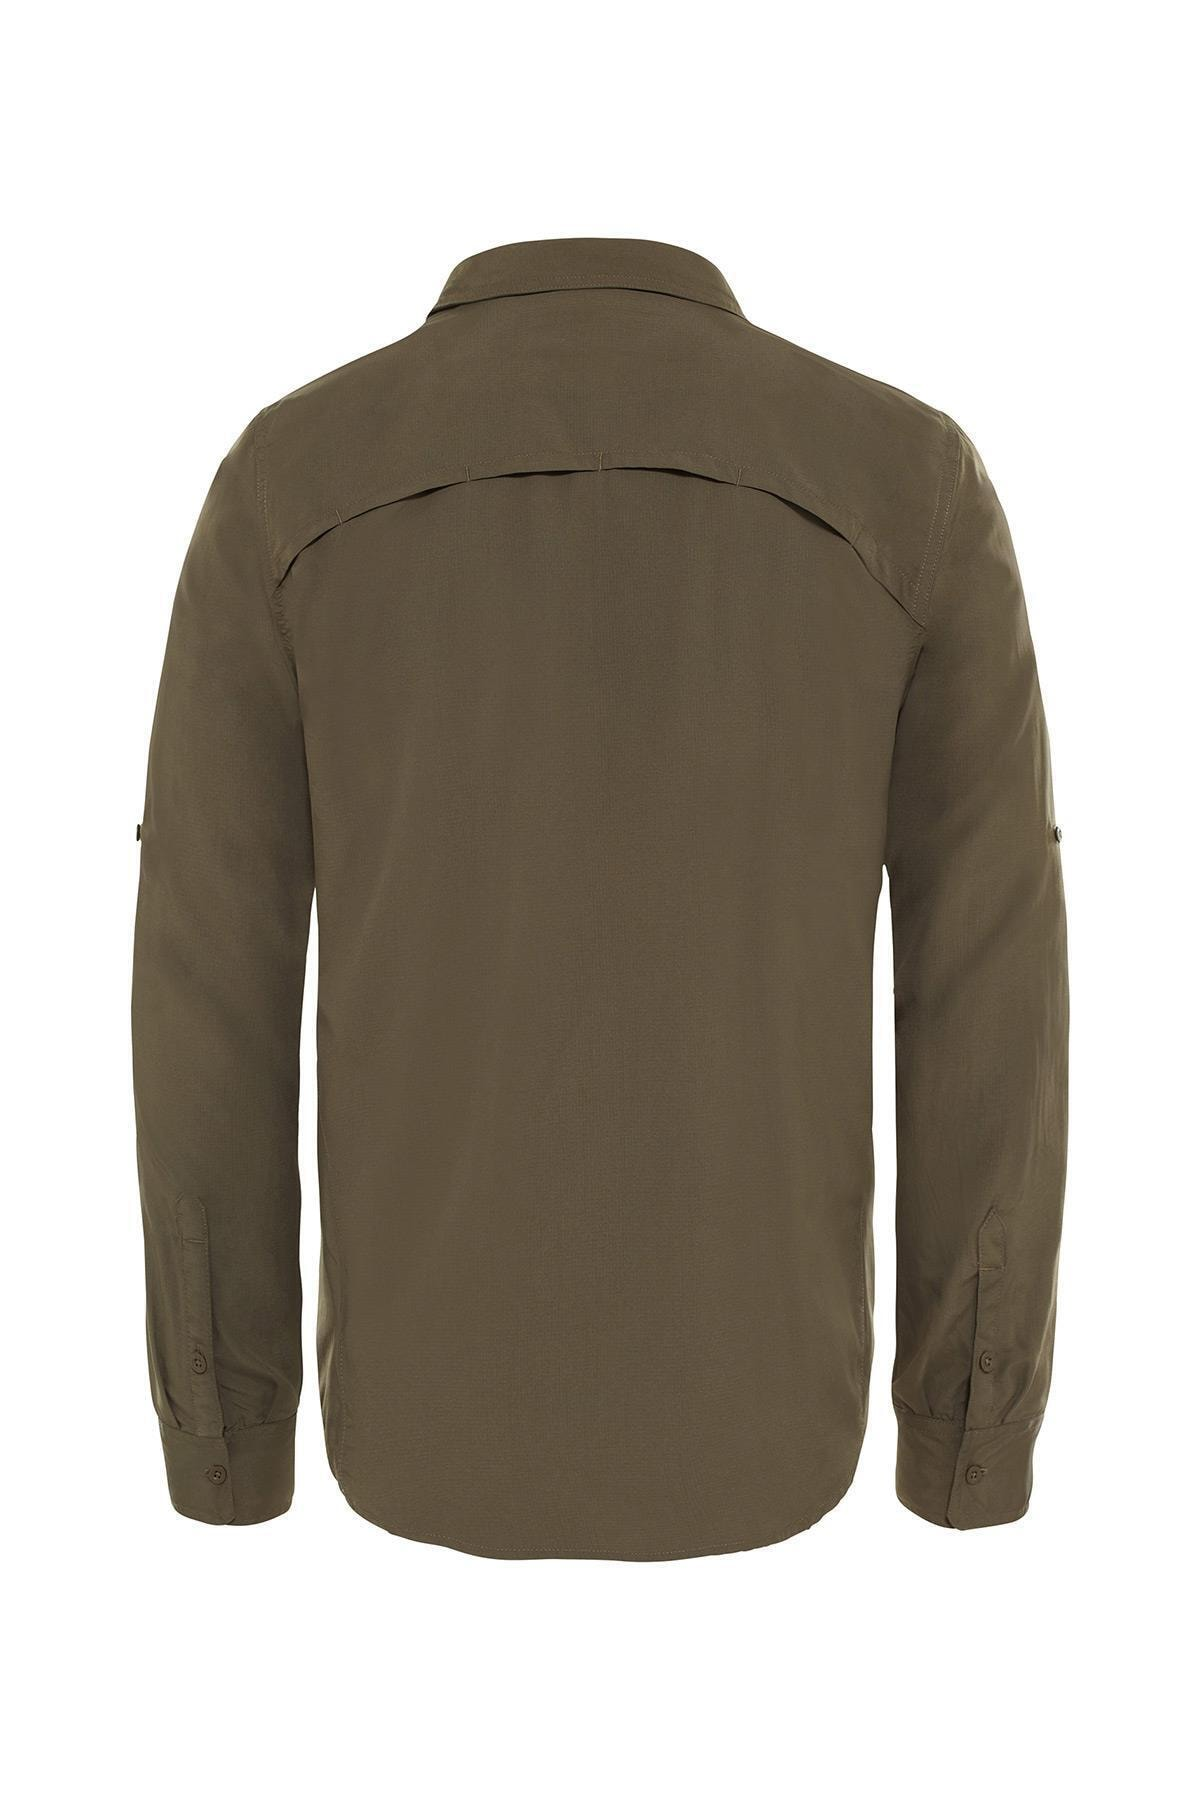 THE NORTH FACE The Northface Erkek L/s Sequoia Shirt-eu T92xjw21l Gömlek 2